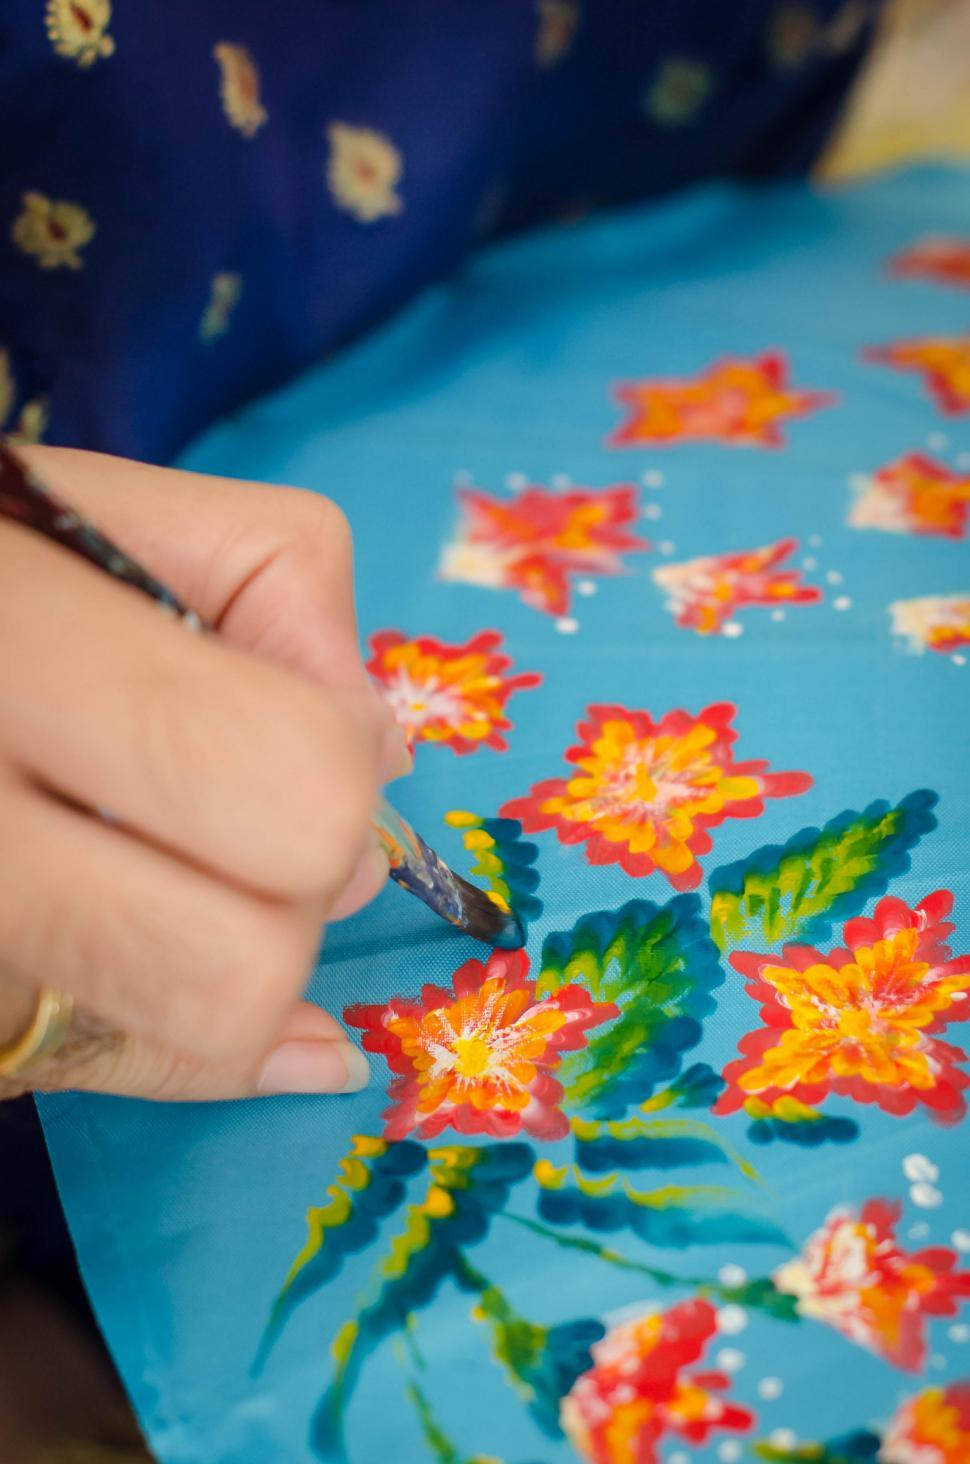 Download Free Stock HD Photo of Hand Painting Umbrella Pattern Online